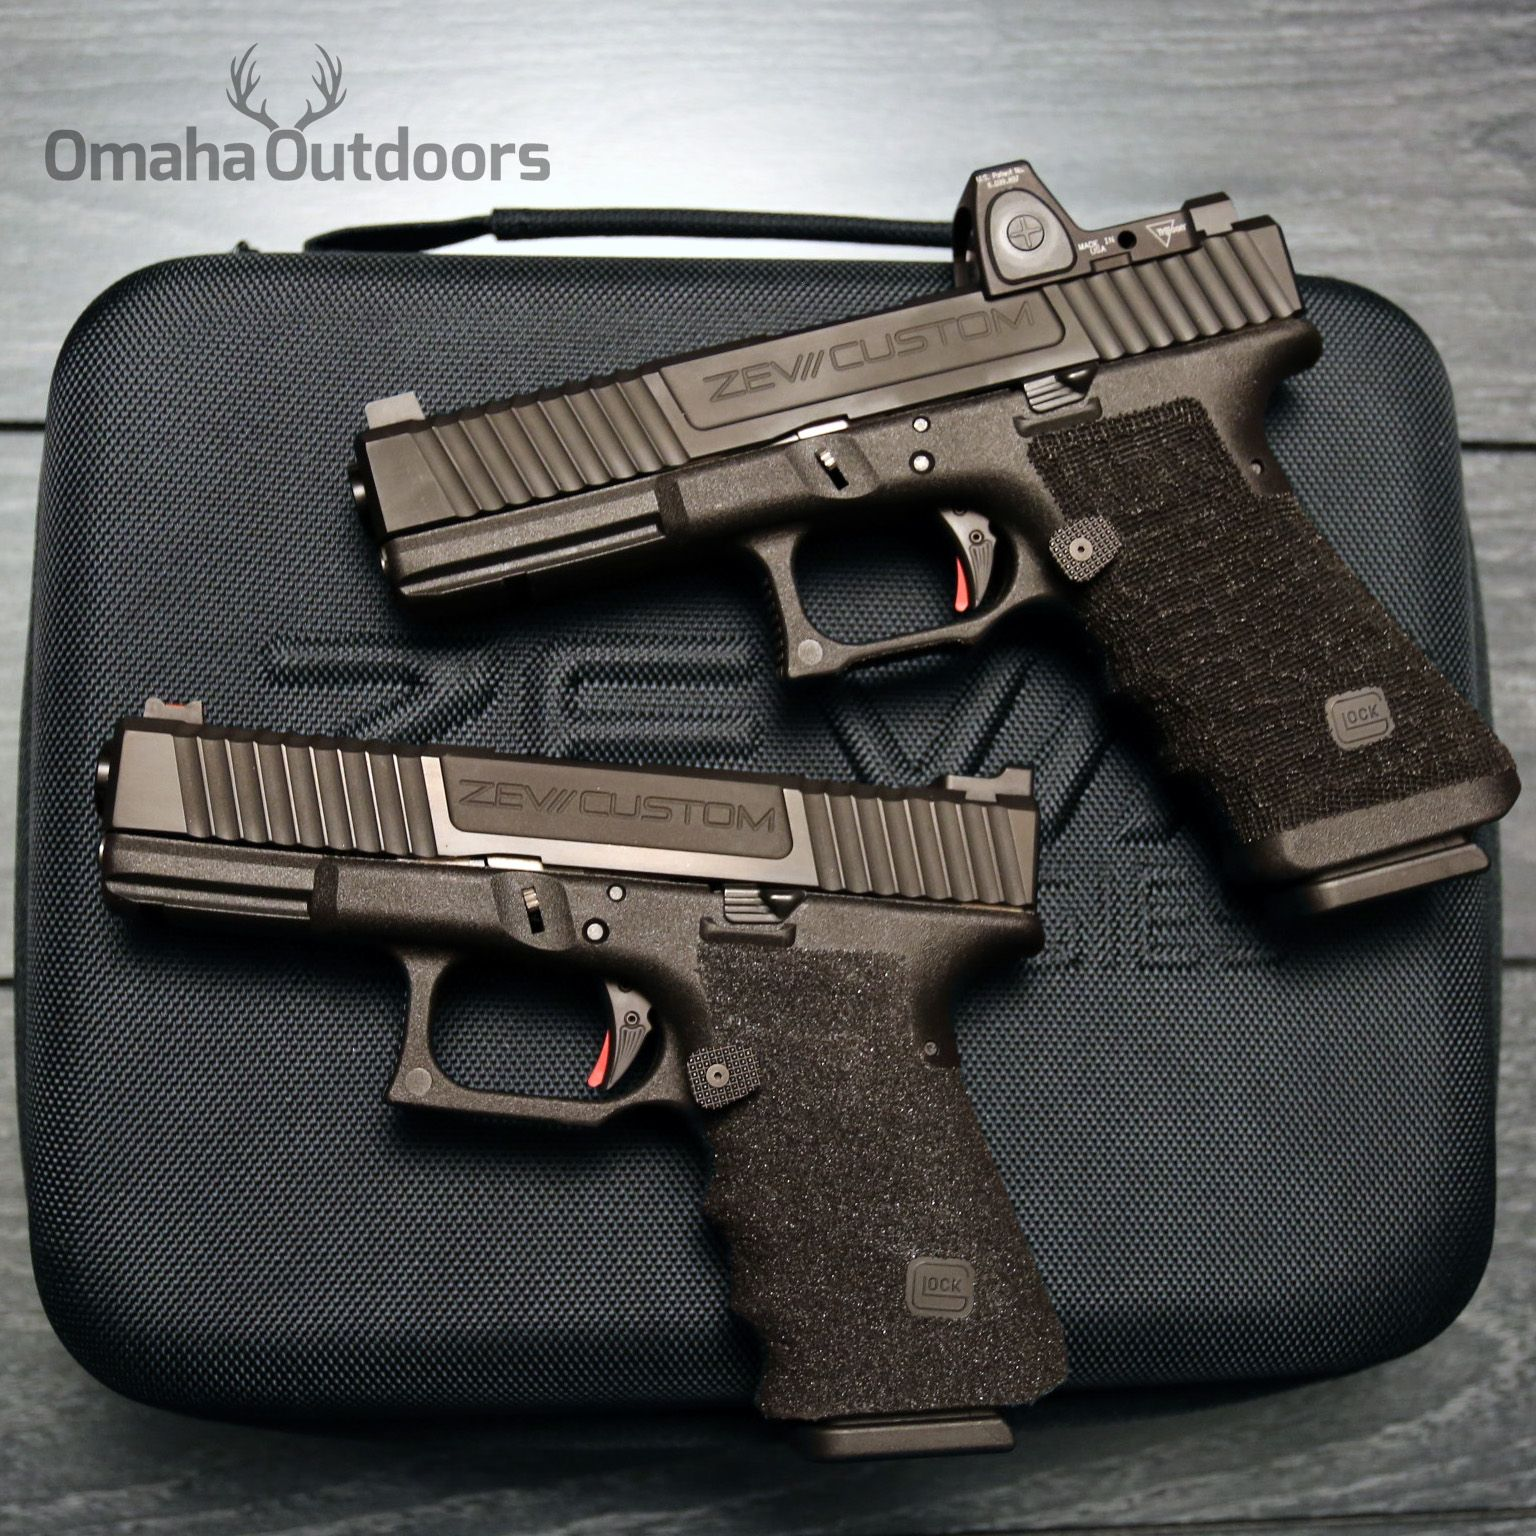 Contact Omaha Outdoors for your Glock needs.  Tel: (713) 703-4648 Email: info@omahaoutdoors.com #glock #glockteam #glock17 #glock19 #glockmods #glockperfection #glockfanatics #omahaoutdoors